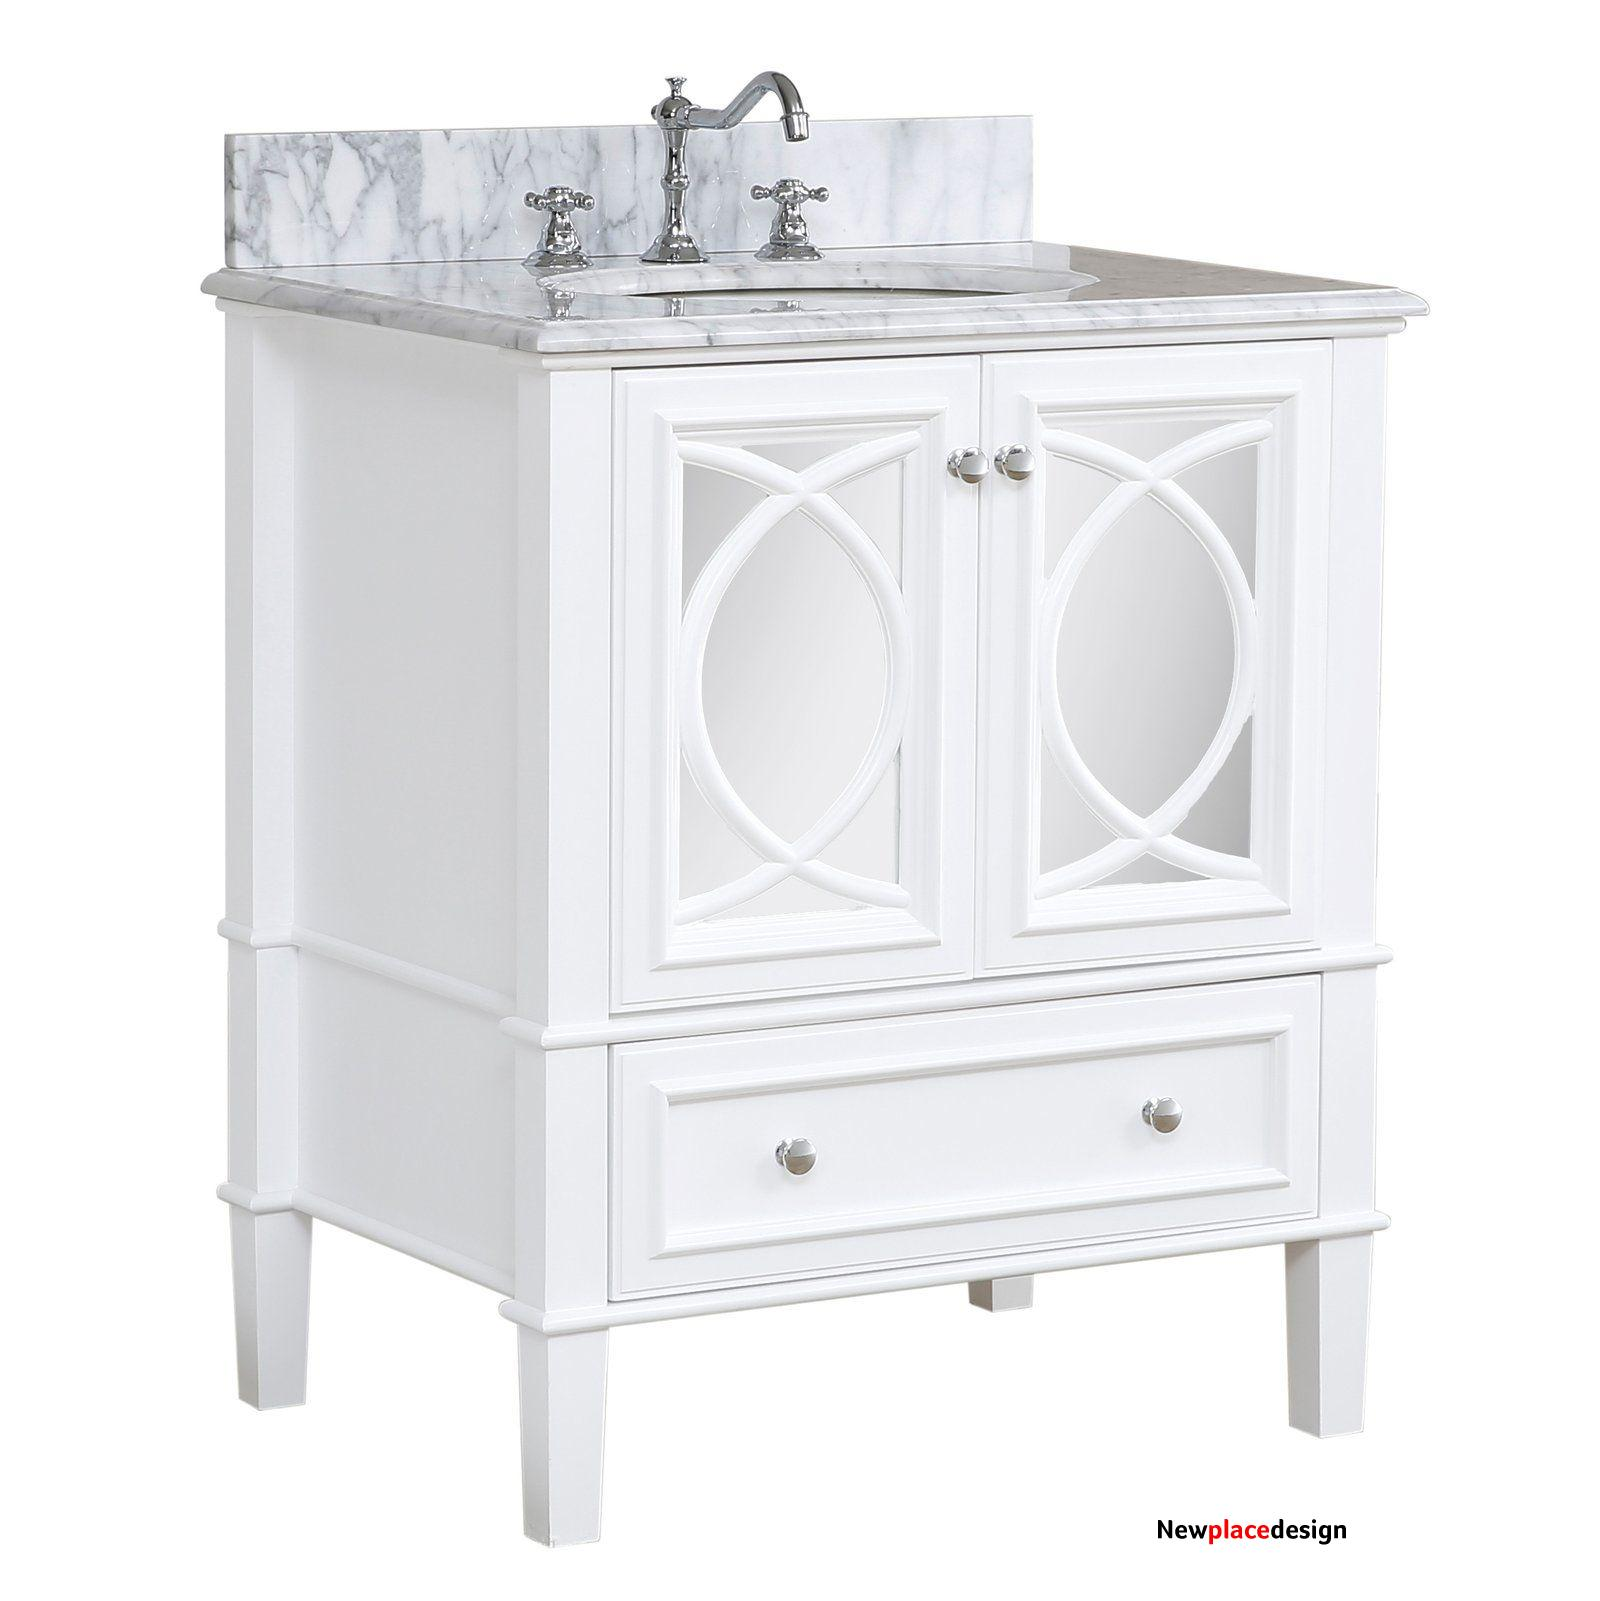 Olivia 30-inch Vanity with Carrara Marble Top - White